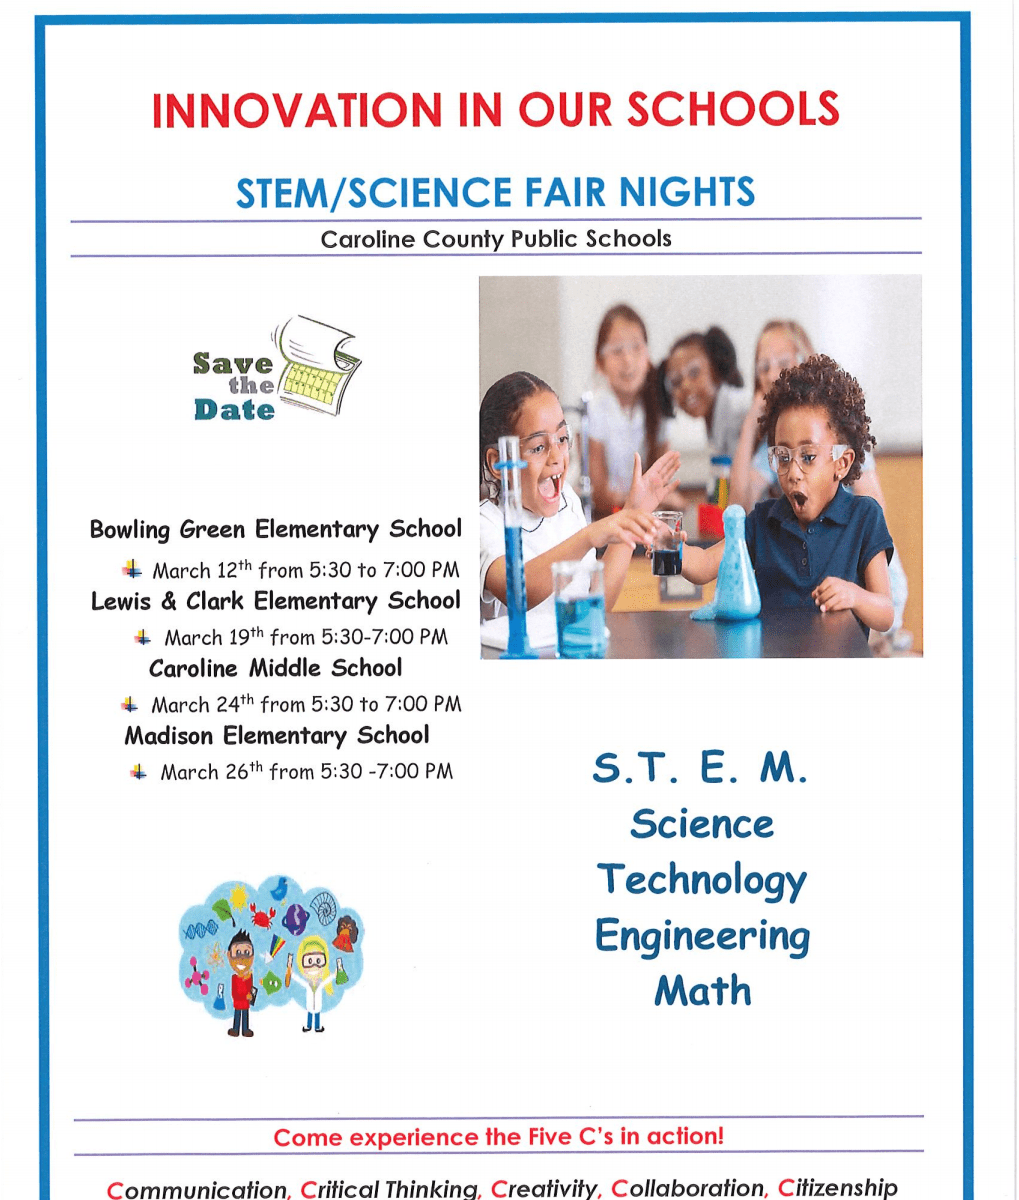 Innovation in our schools, STEM/Science fair nights